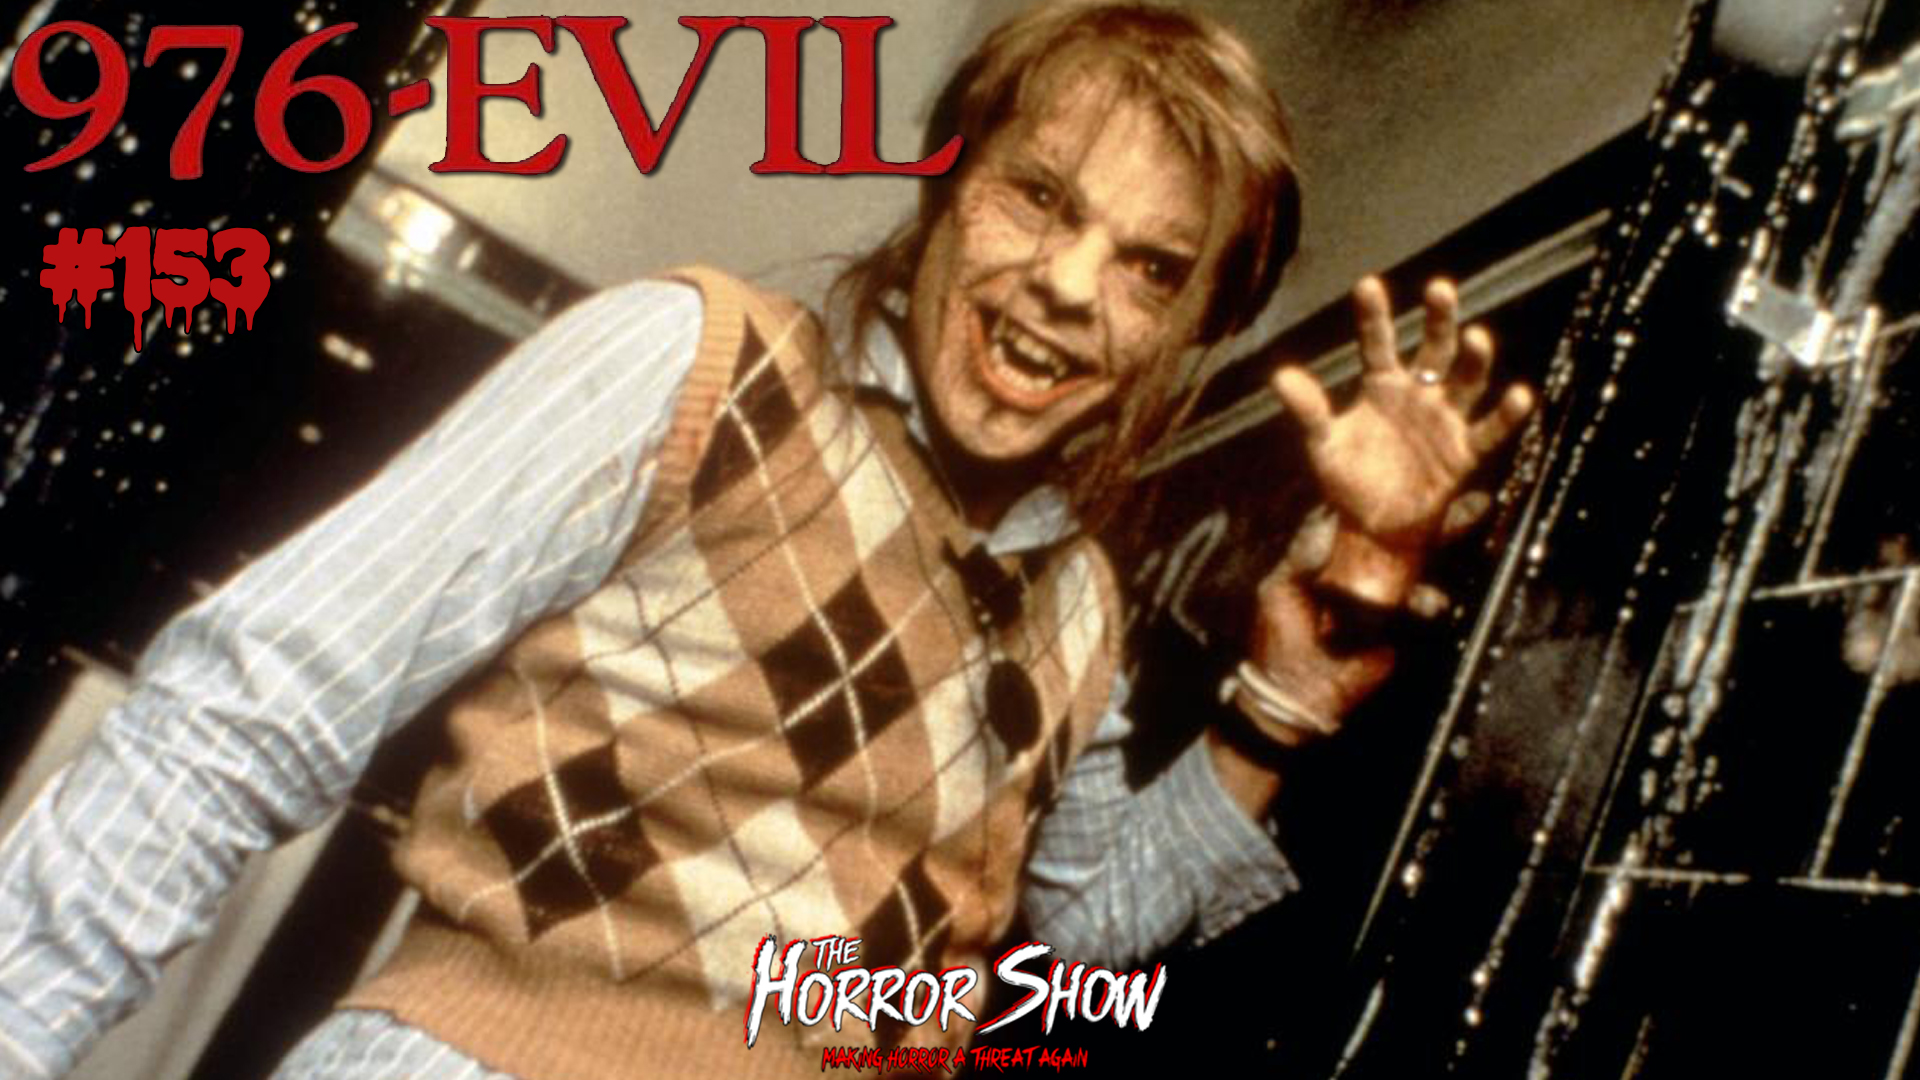 Podcasts The Horror Show 153 976 Evil Bloody Disgusting 976-EVIL